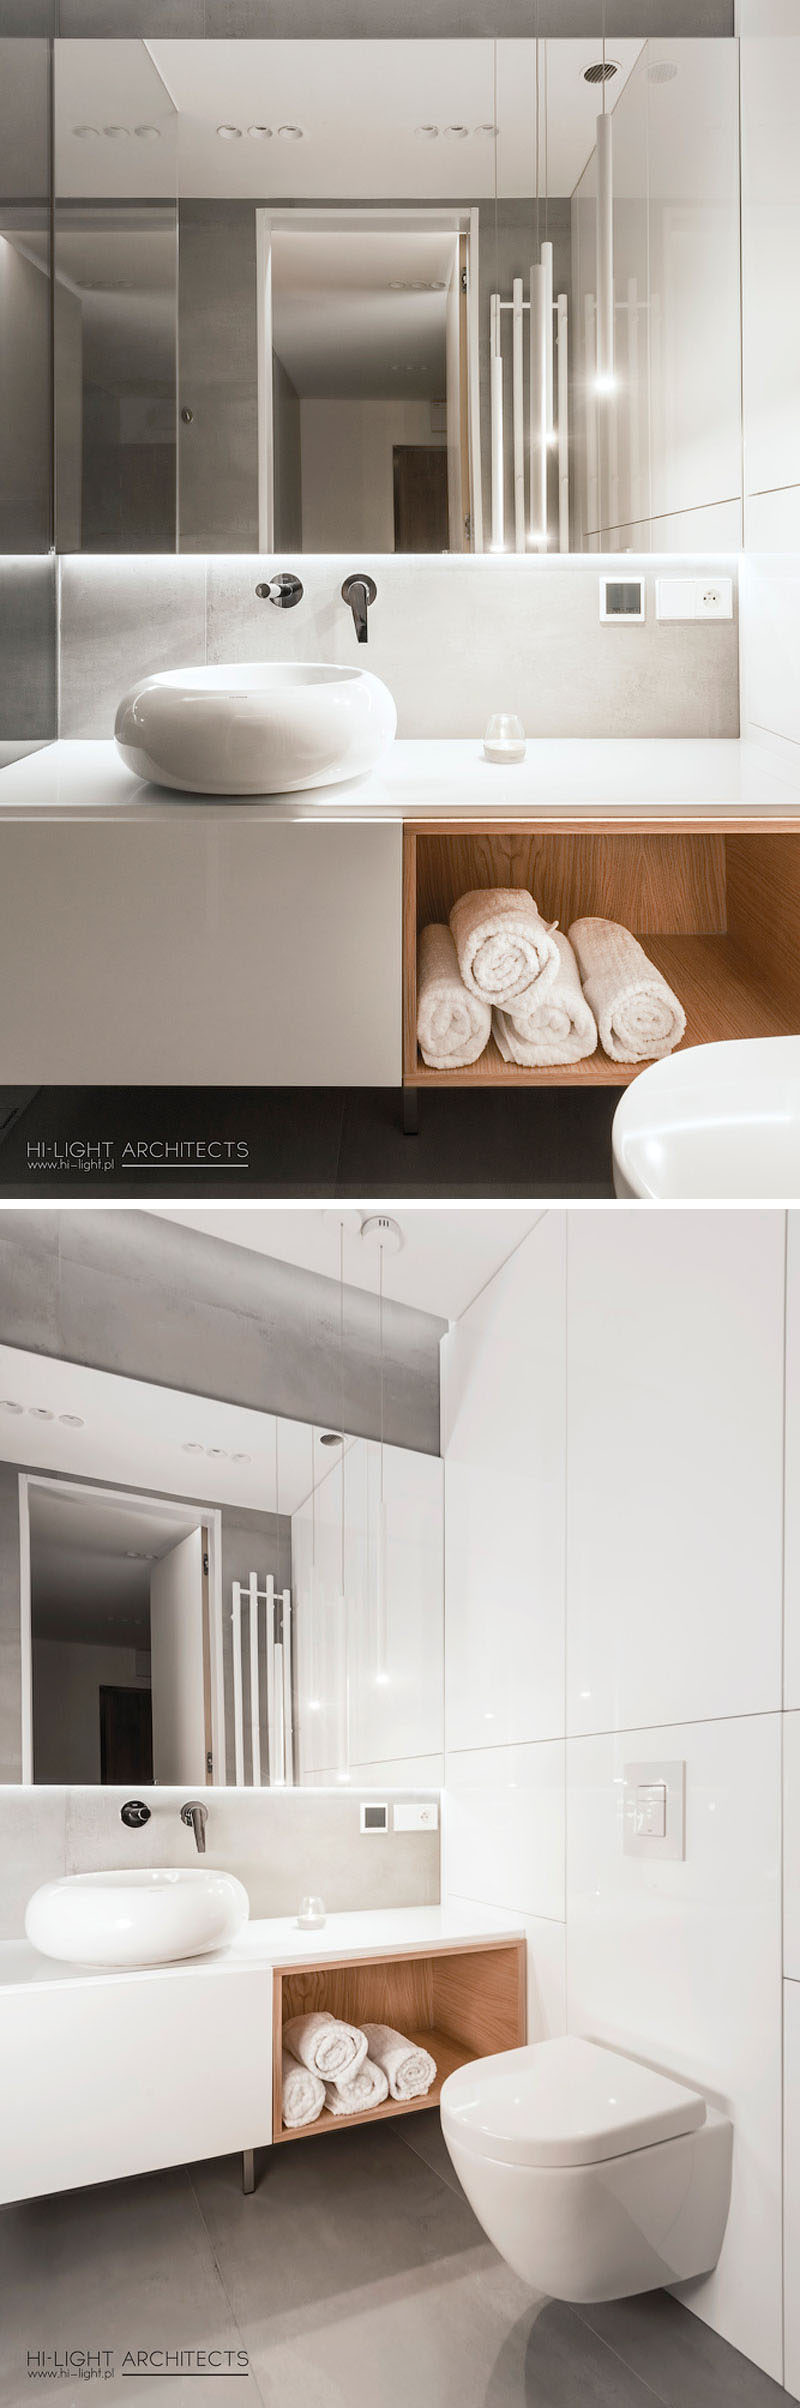 This mostly white bathroom has a blacklit mirror, grey accents and an open wood shelving space. #ModernBathroom